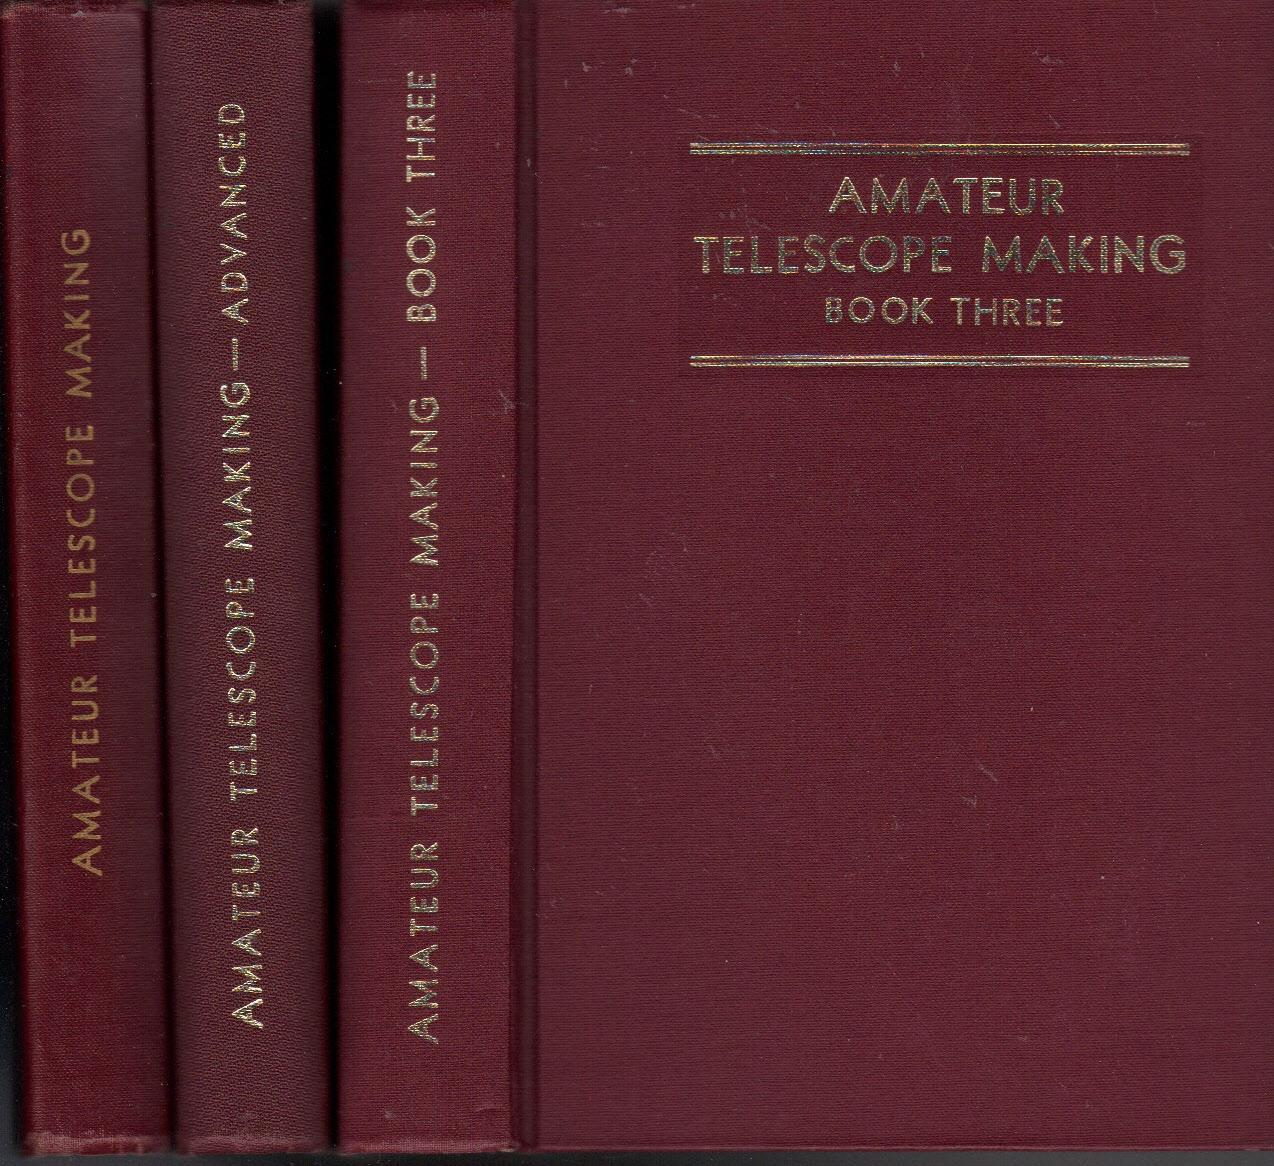 Amateur Telescope Making : Books 1, 2, and 3, Complete in 3 Volumes: Ingalls, Albert G. (editor)